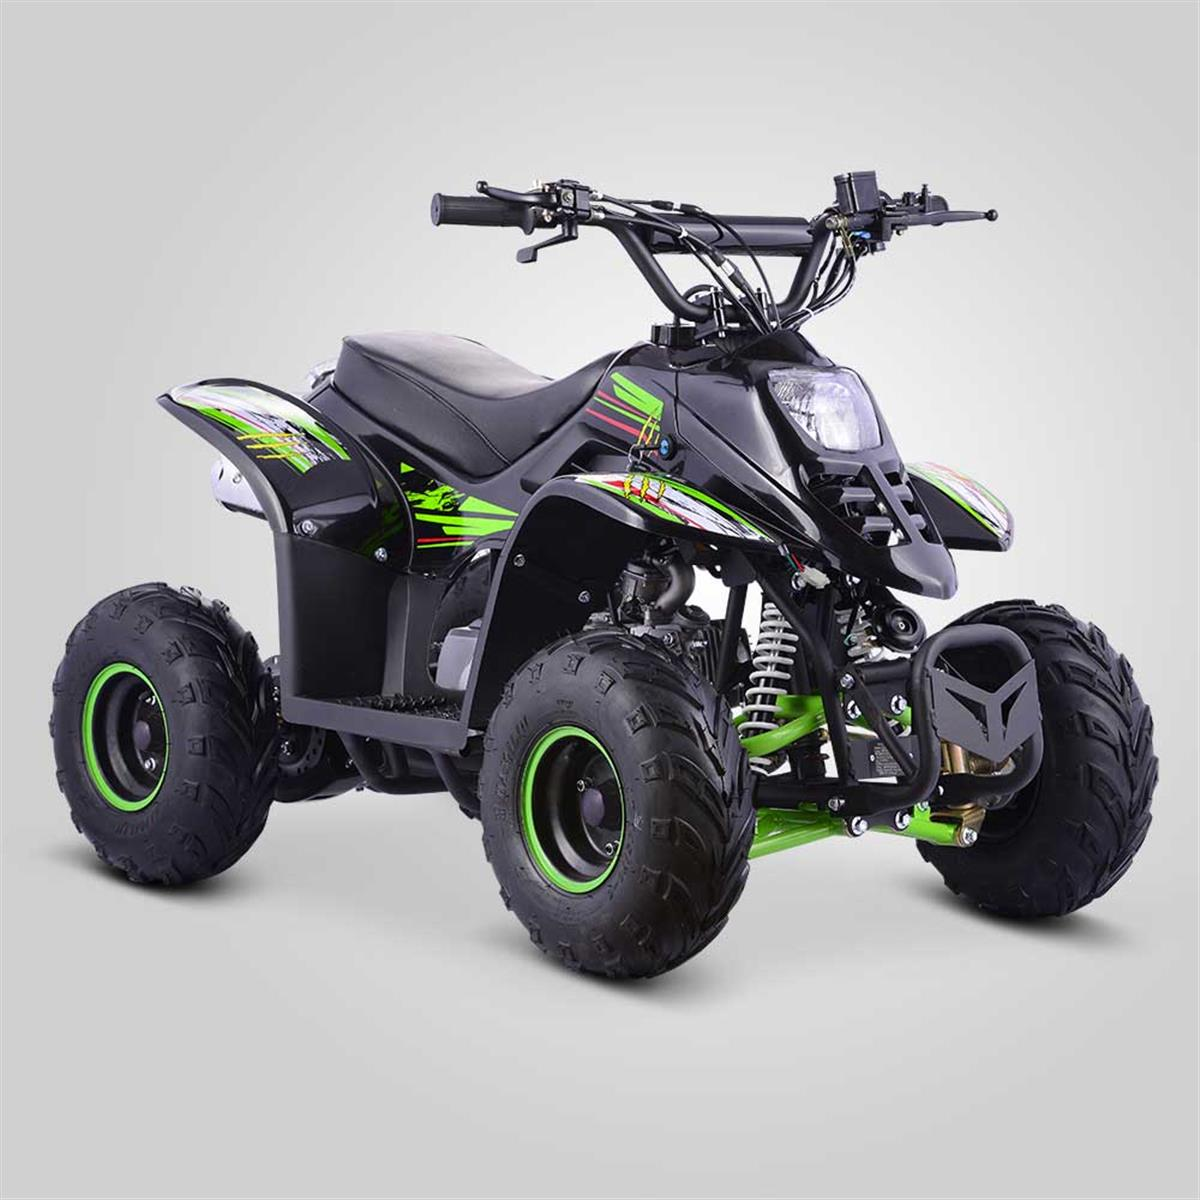 quad loisir enfant diamon 110cc vert small mx smallmx dirt bike pit bike quads minimoto. Black Bedroom Furniture Sets. Home Design Ideas